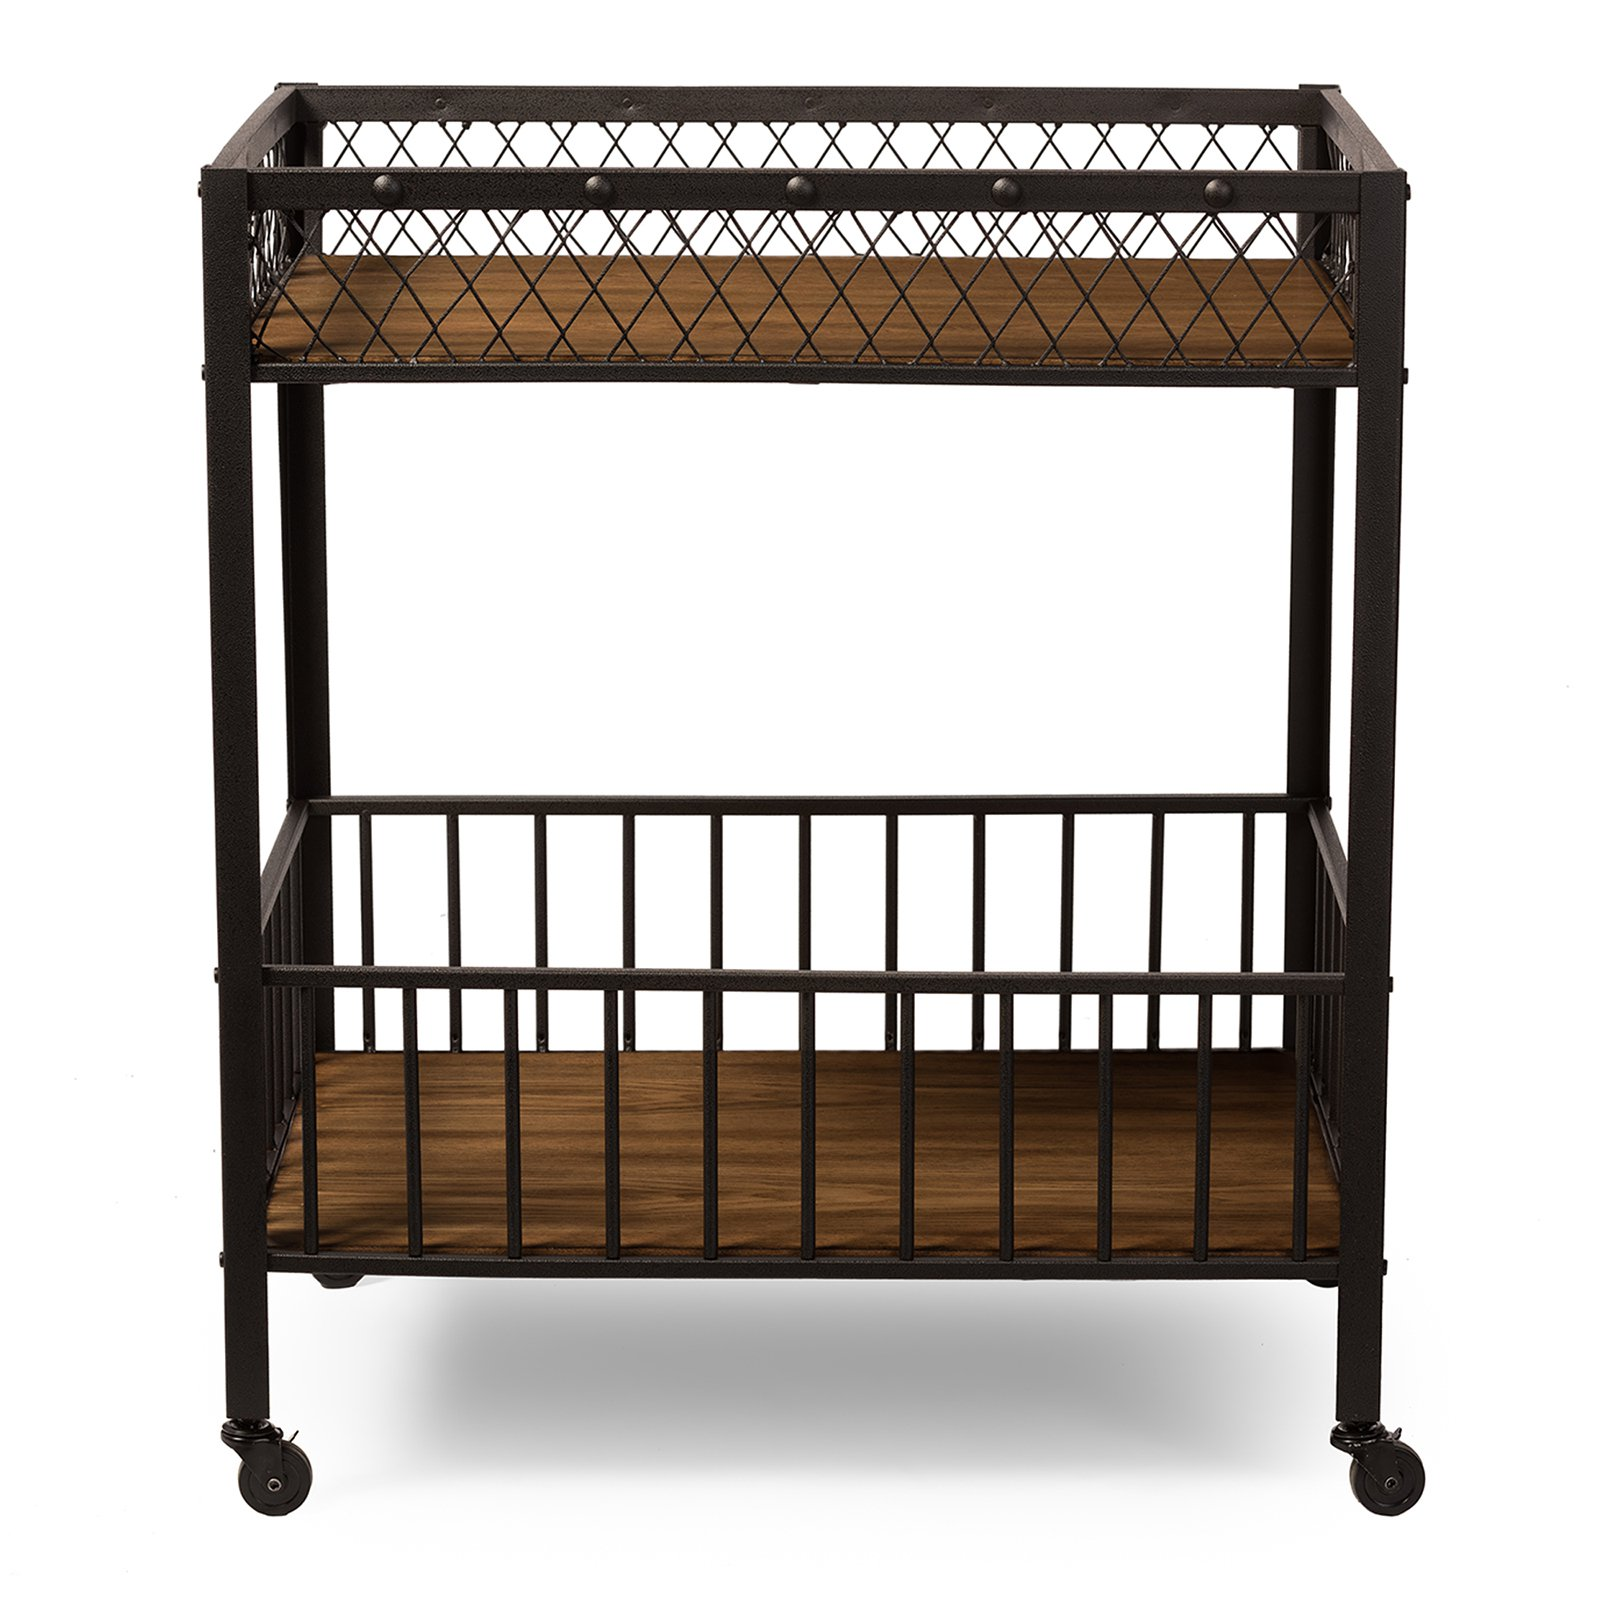 Baxton Studio Bentley Antiqued Vintage Industrial Metal and Wood Wheeled Kitchen Serving Cart by Wholesale Interiors